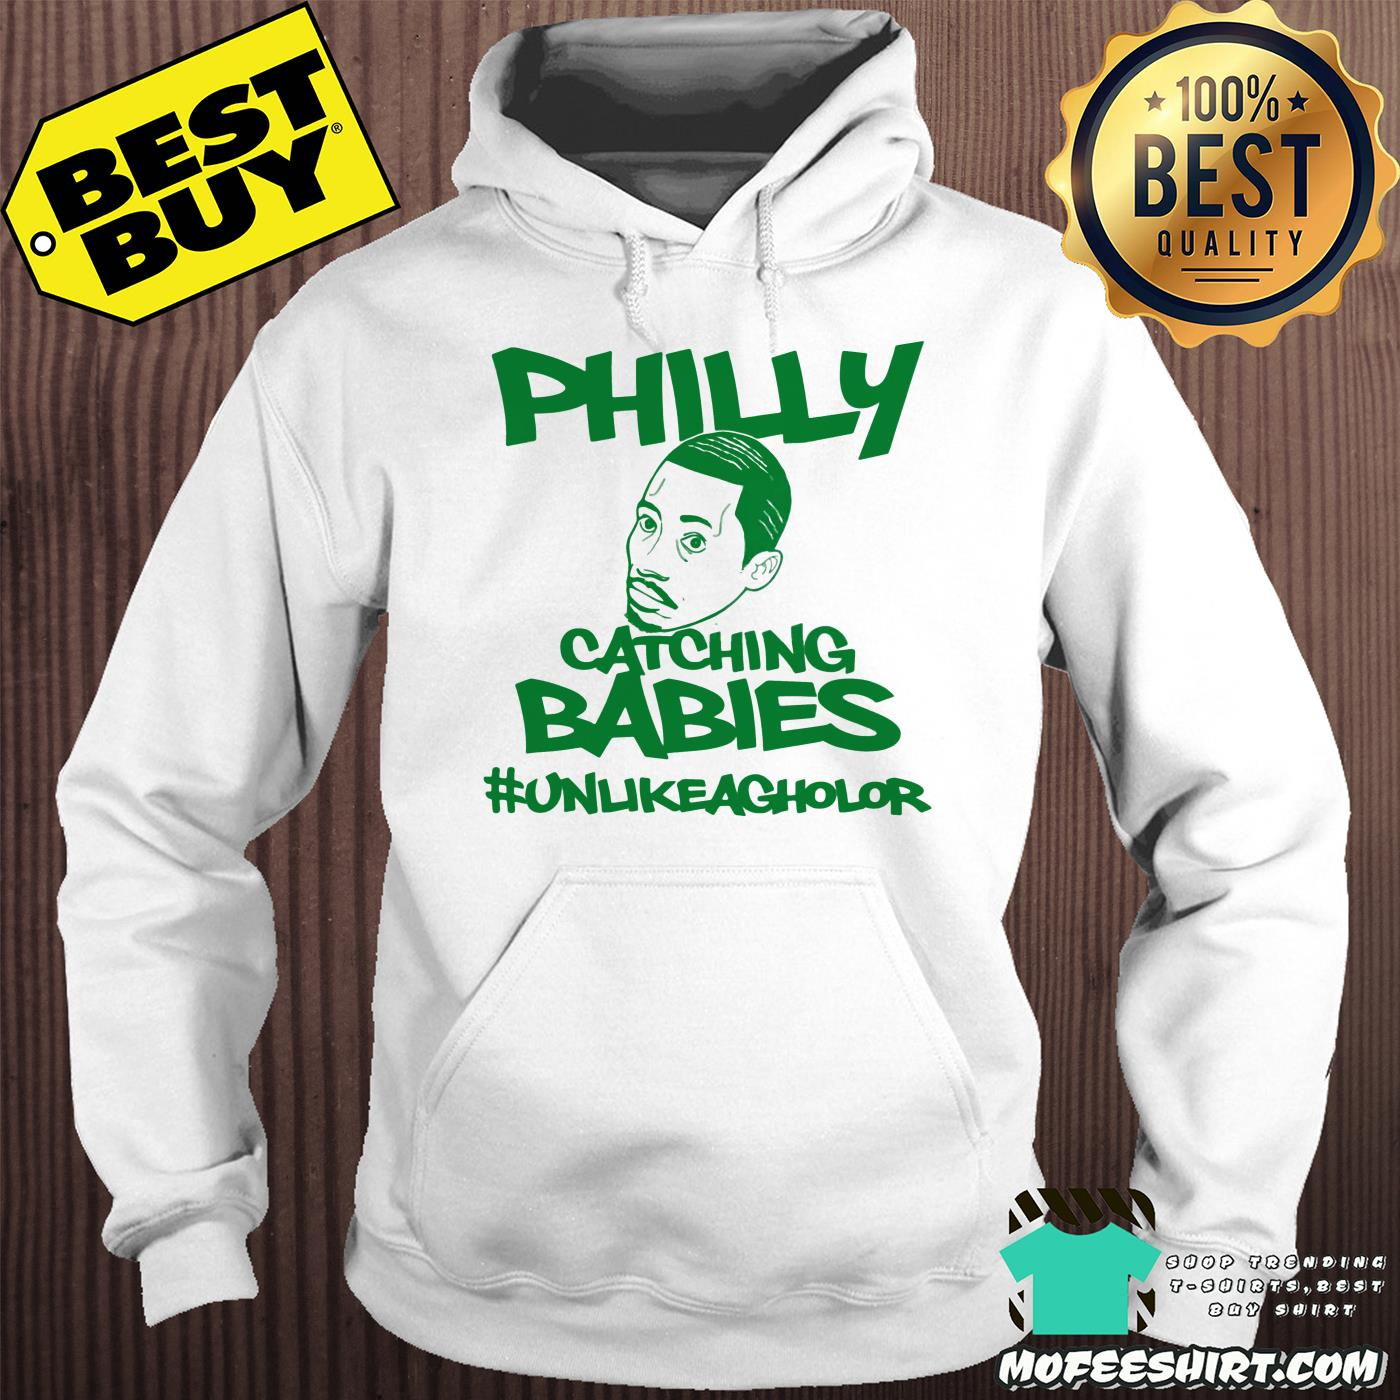 philly catching babies unlike agholor hoodie - Philly Catching Babies Unlike Agholor shirt